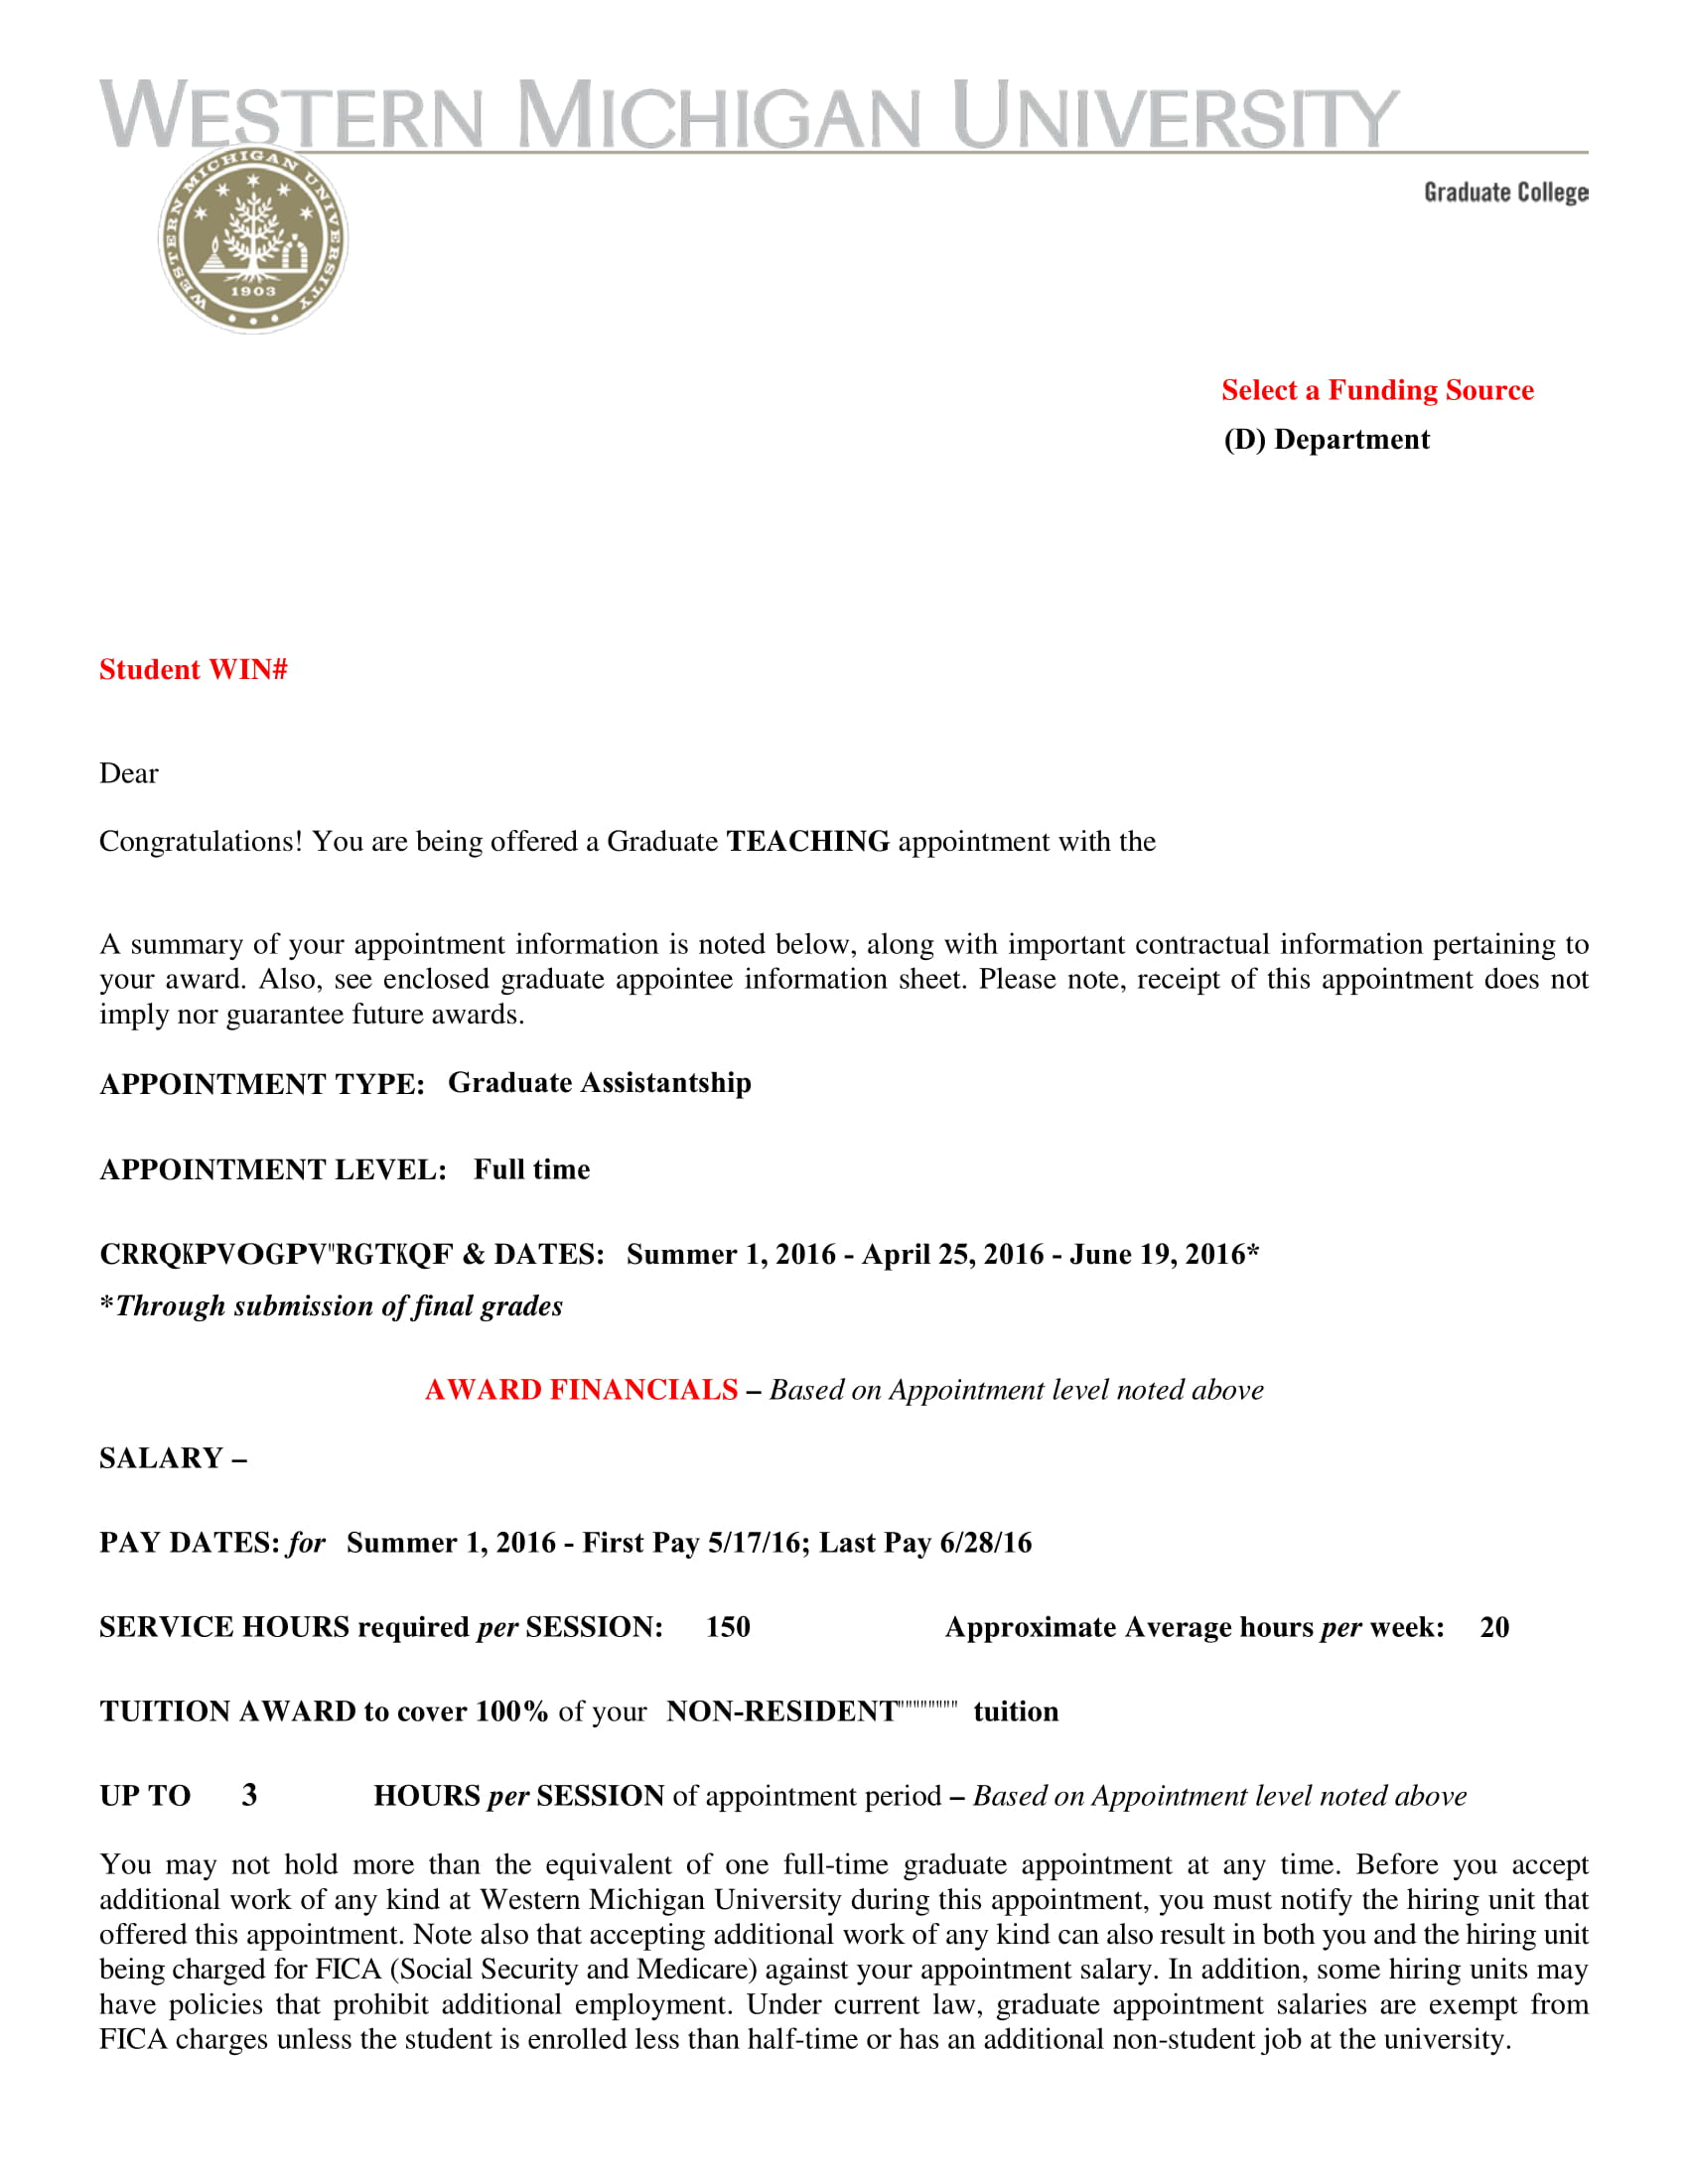 sample teaching appointment letter